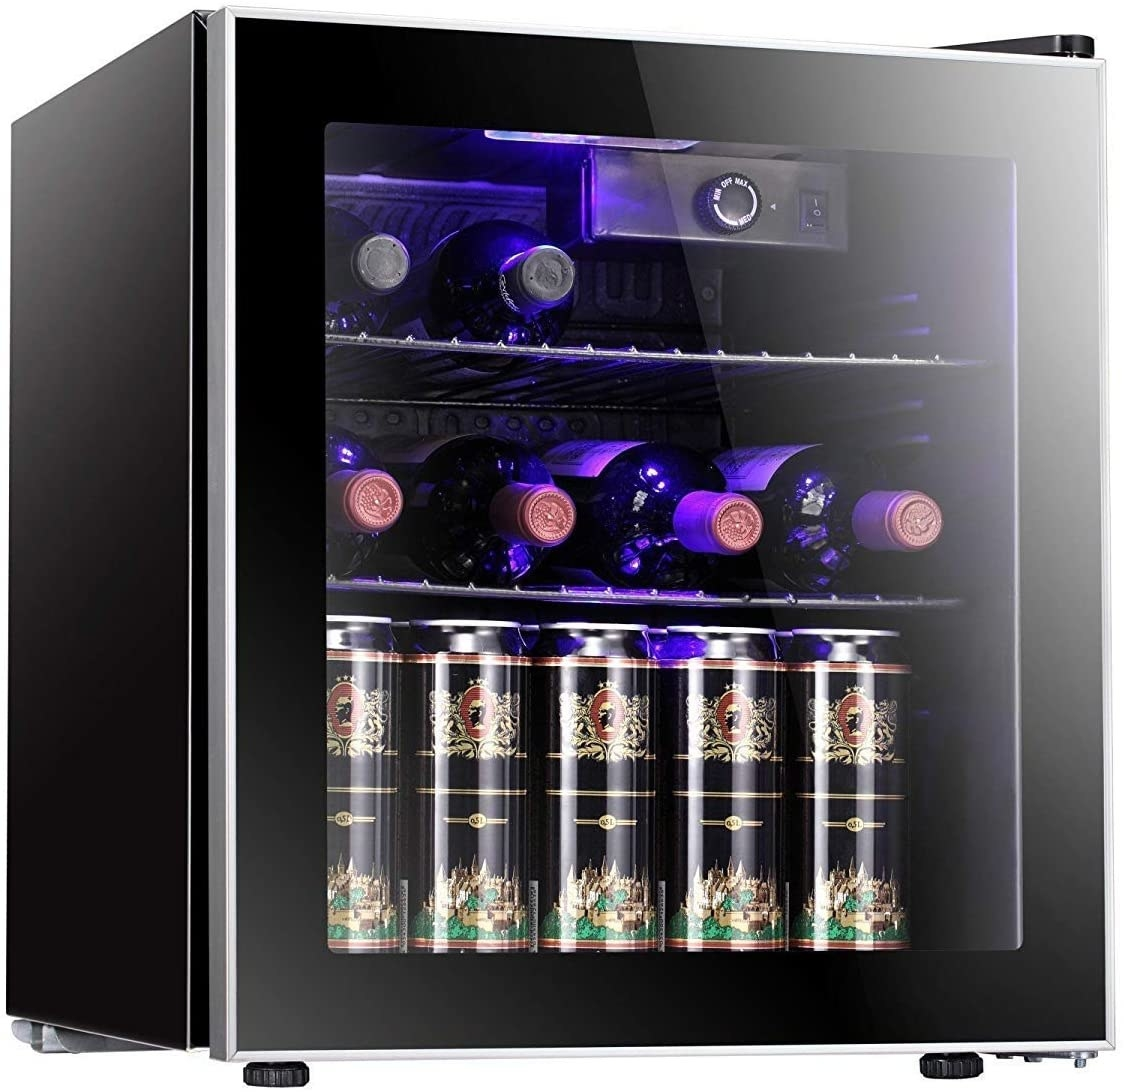 mini fridge with wine and beer inside